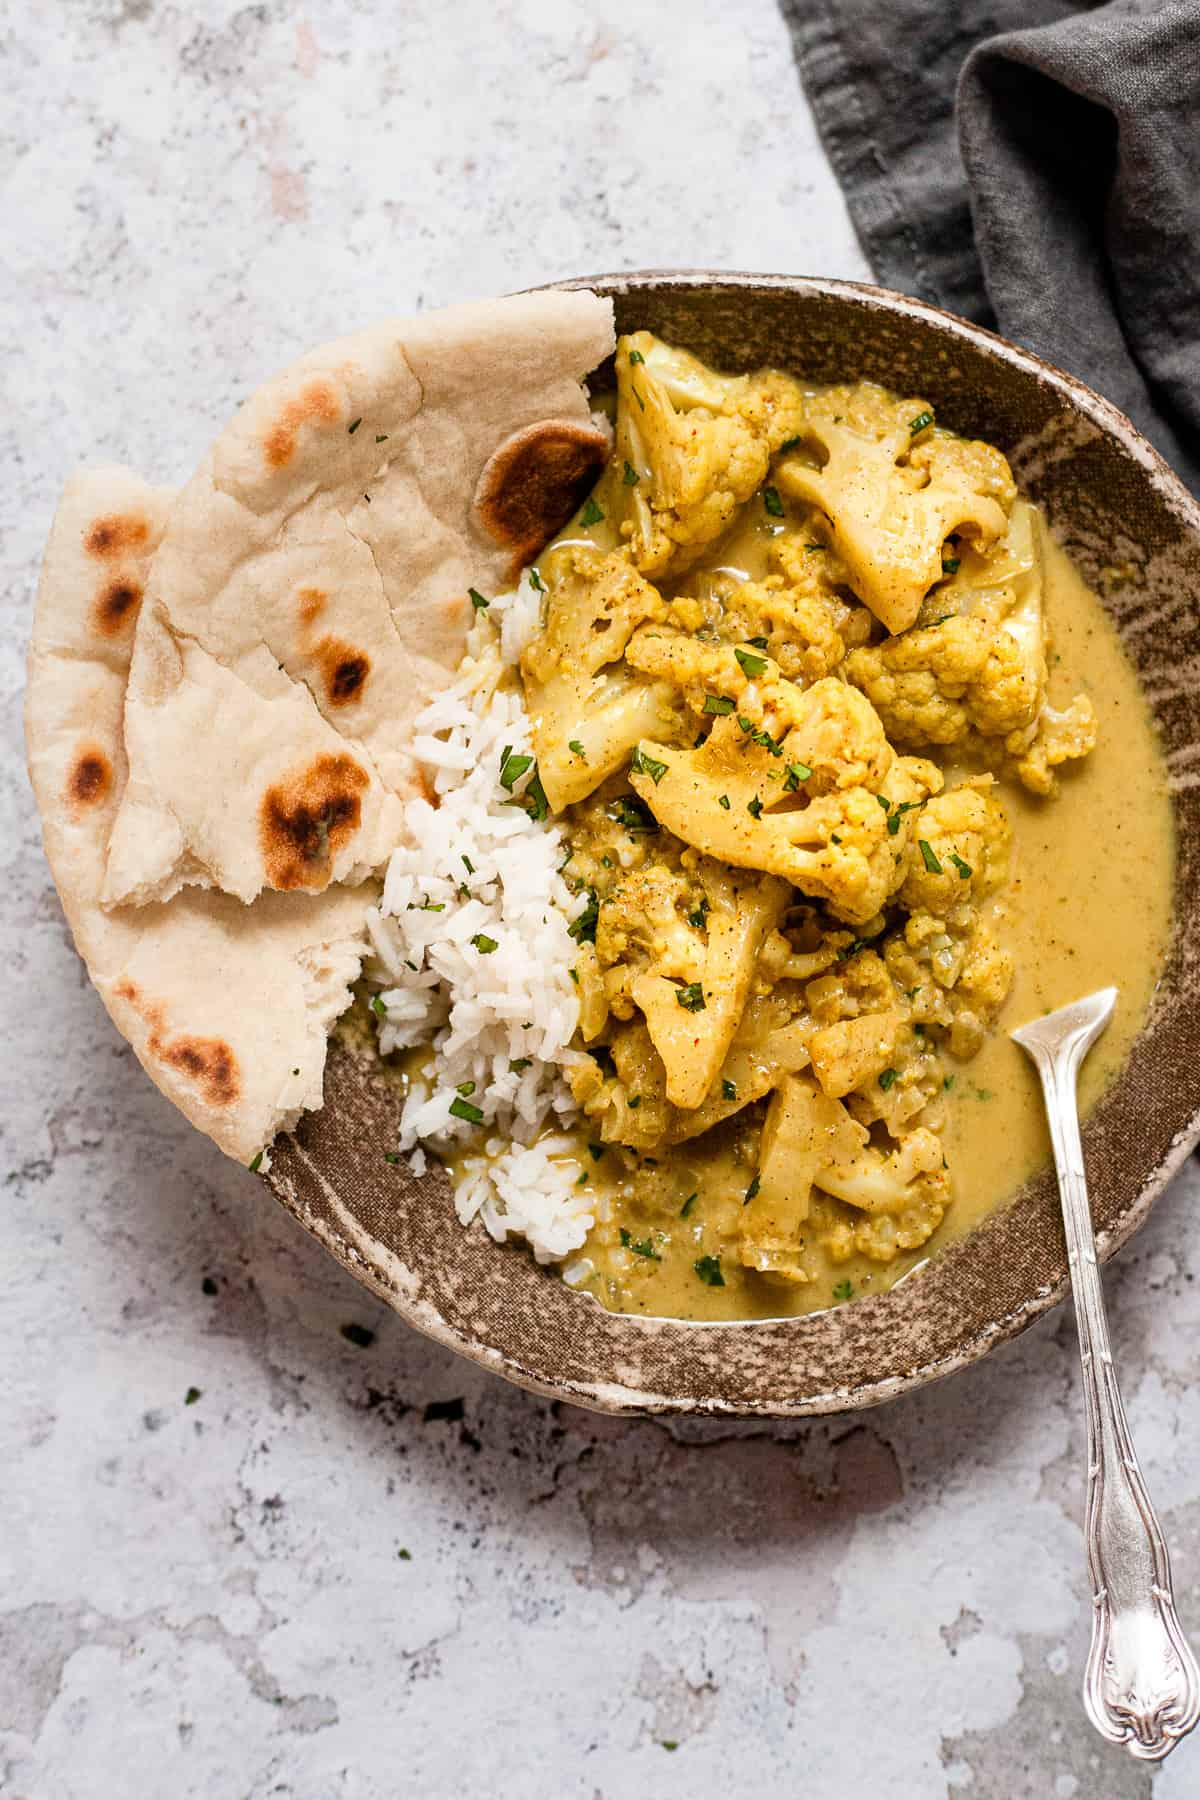 Cauliflower curry in a brown bowl with rice